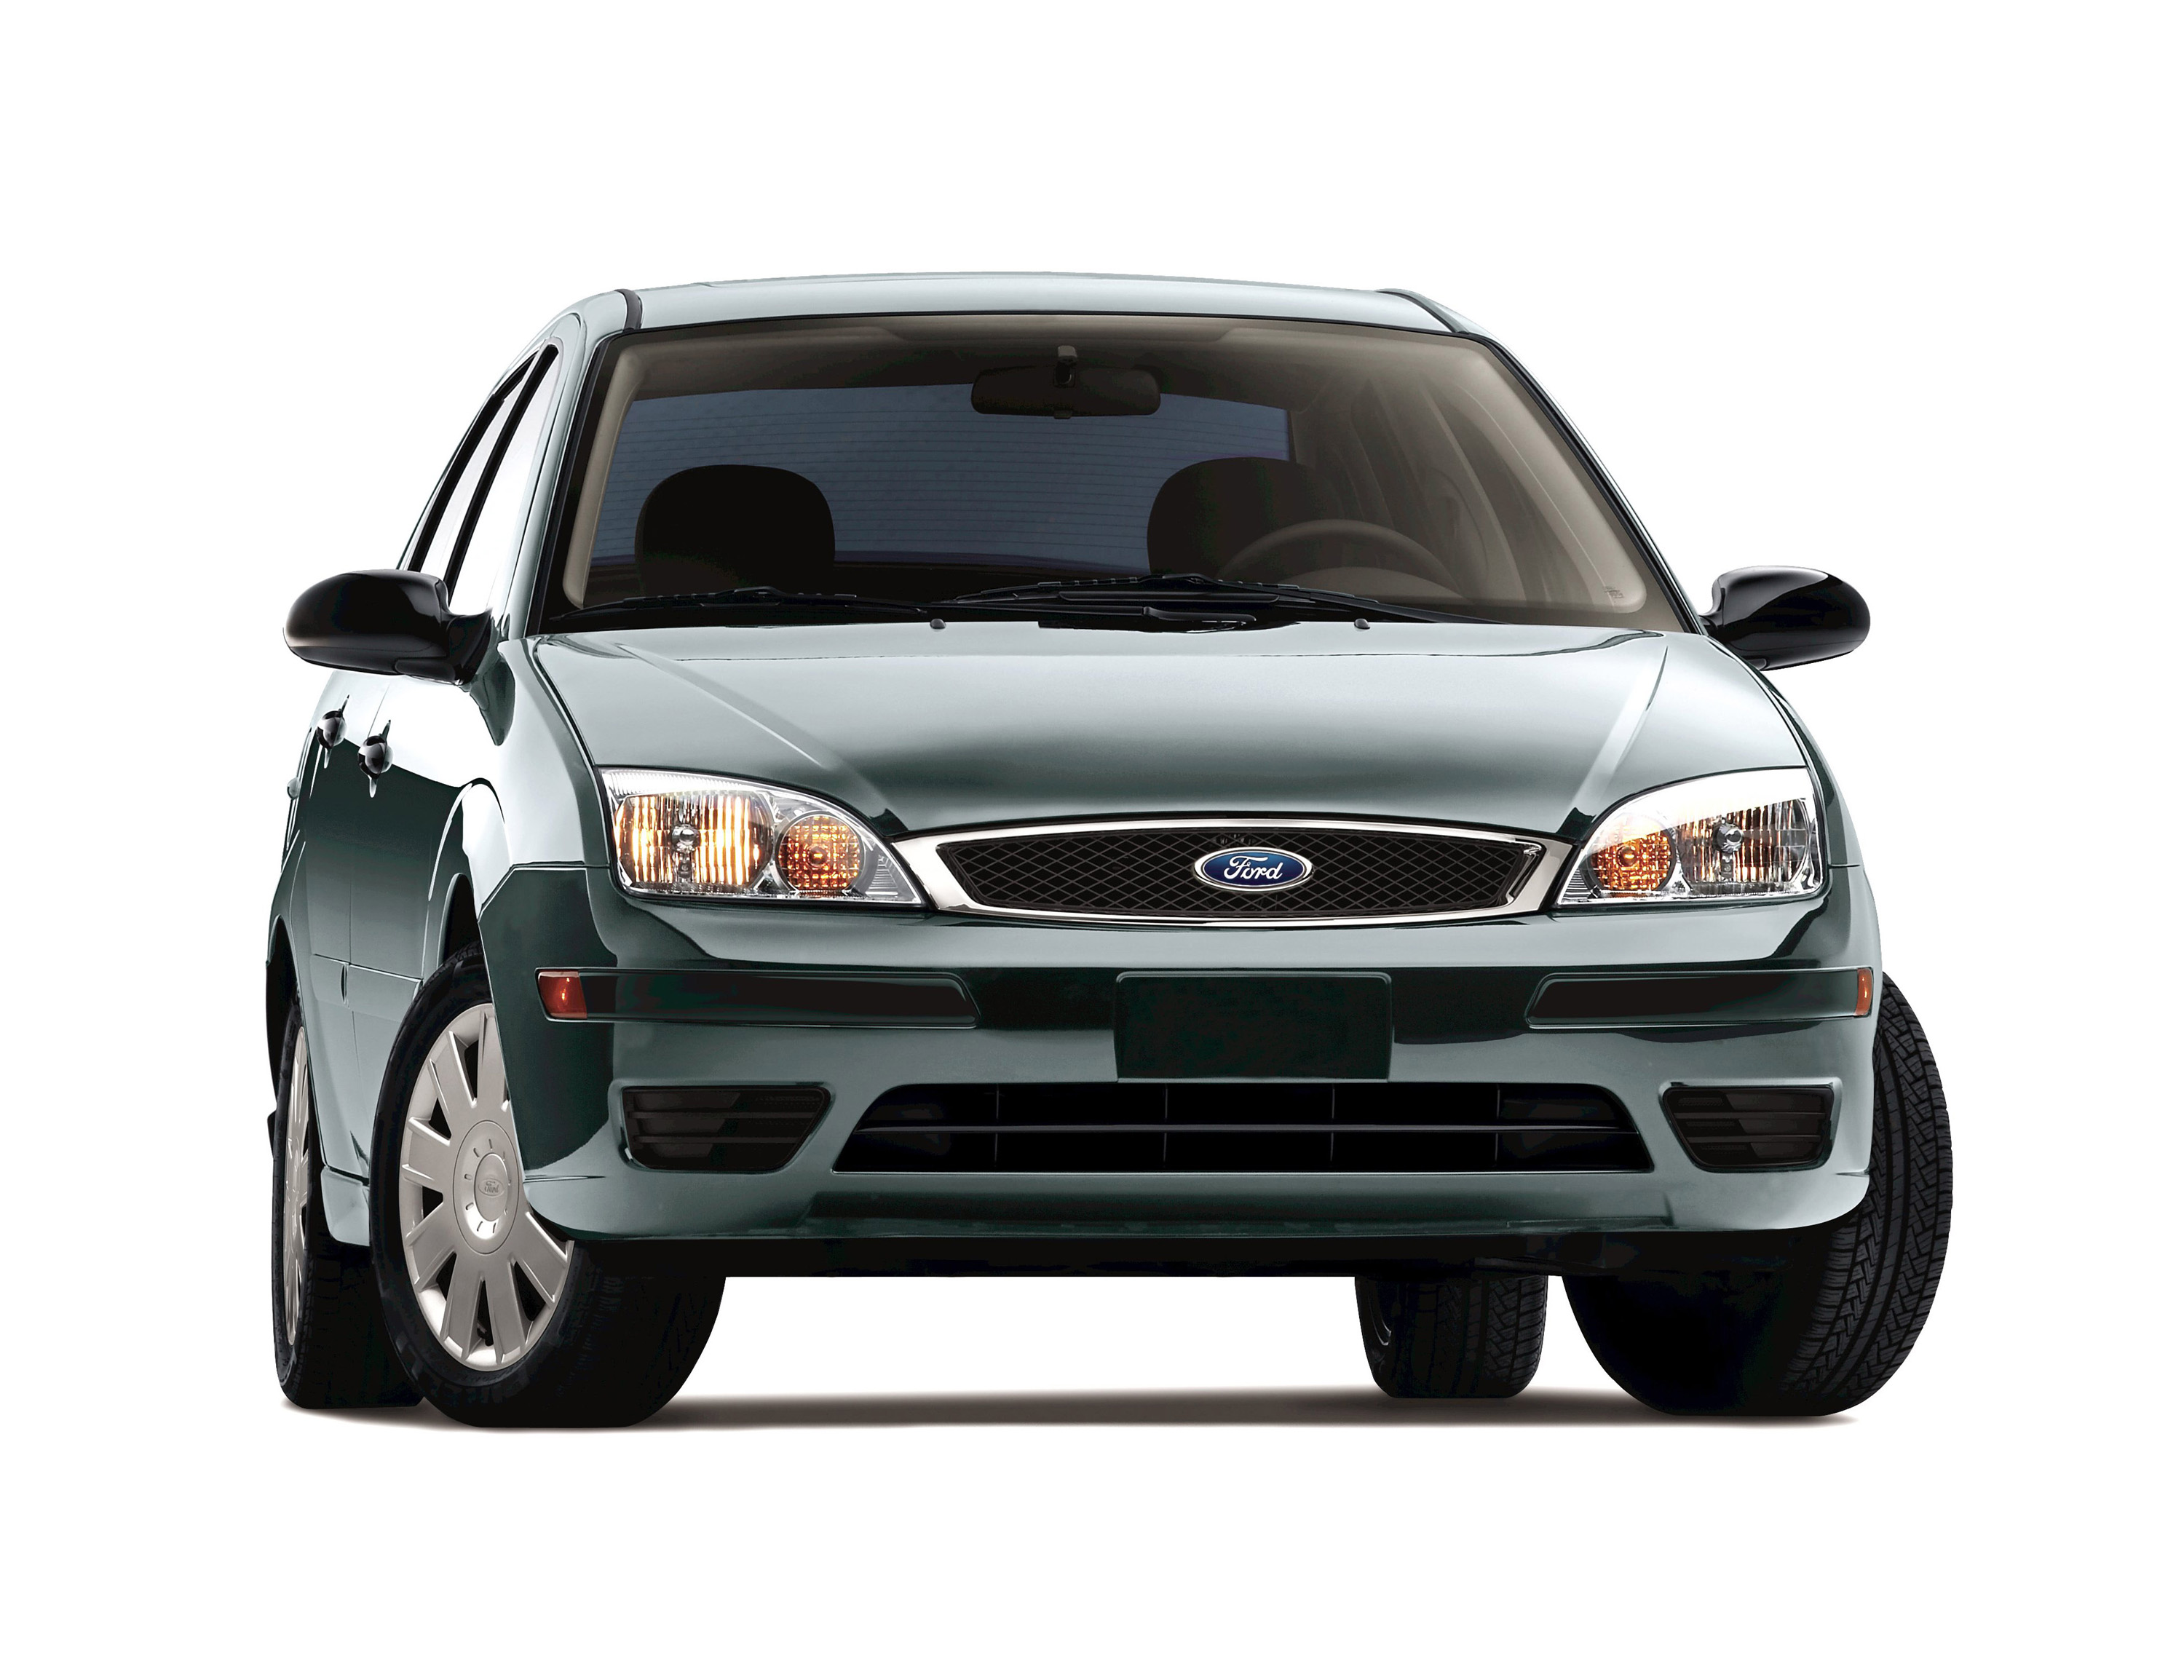 2005 ford focus top speed. Black Bedroom Furniture Sets. Home Design Ideas